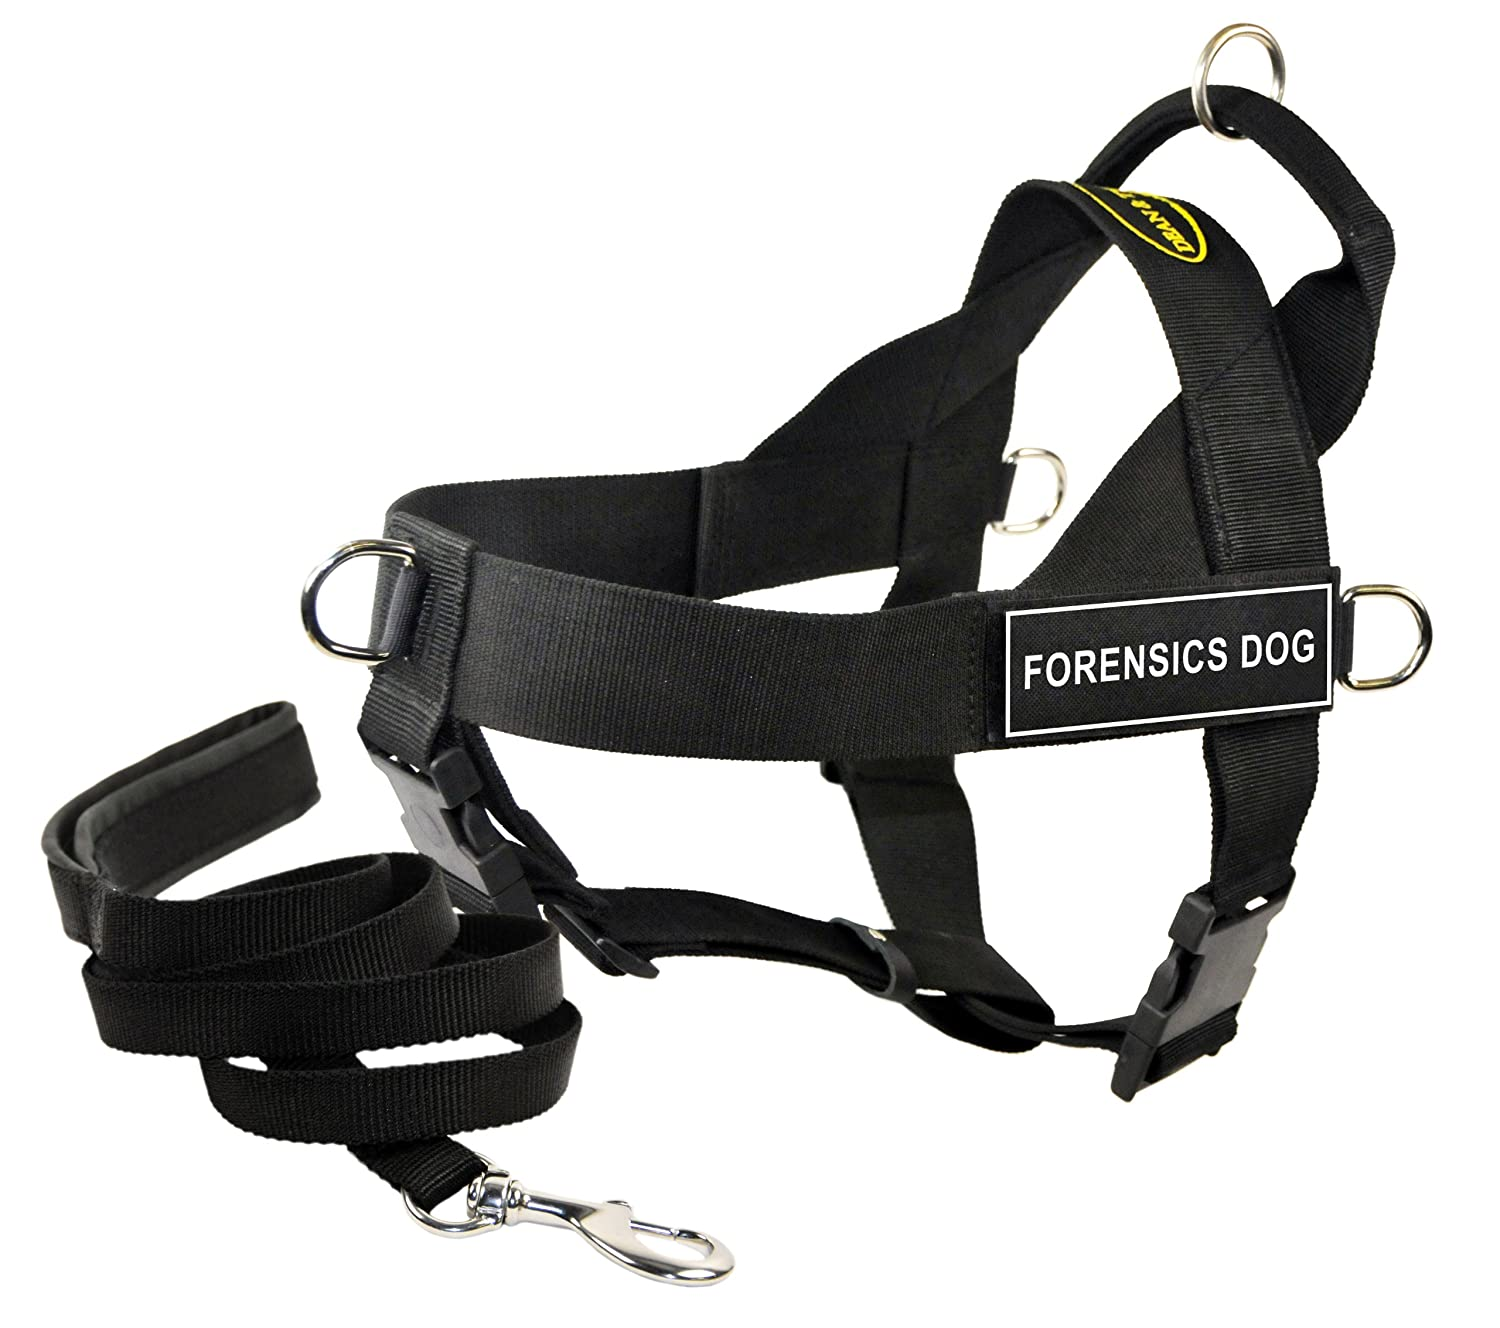 Dean & Tyler DT Universale Forensics Dog Harness, XS, con 1,8 m Padded Puppy guinzaglio.